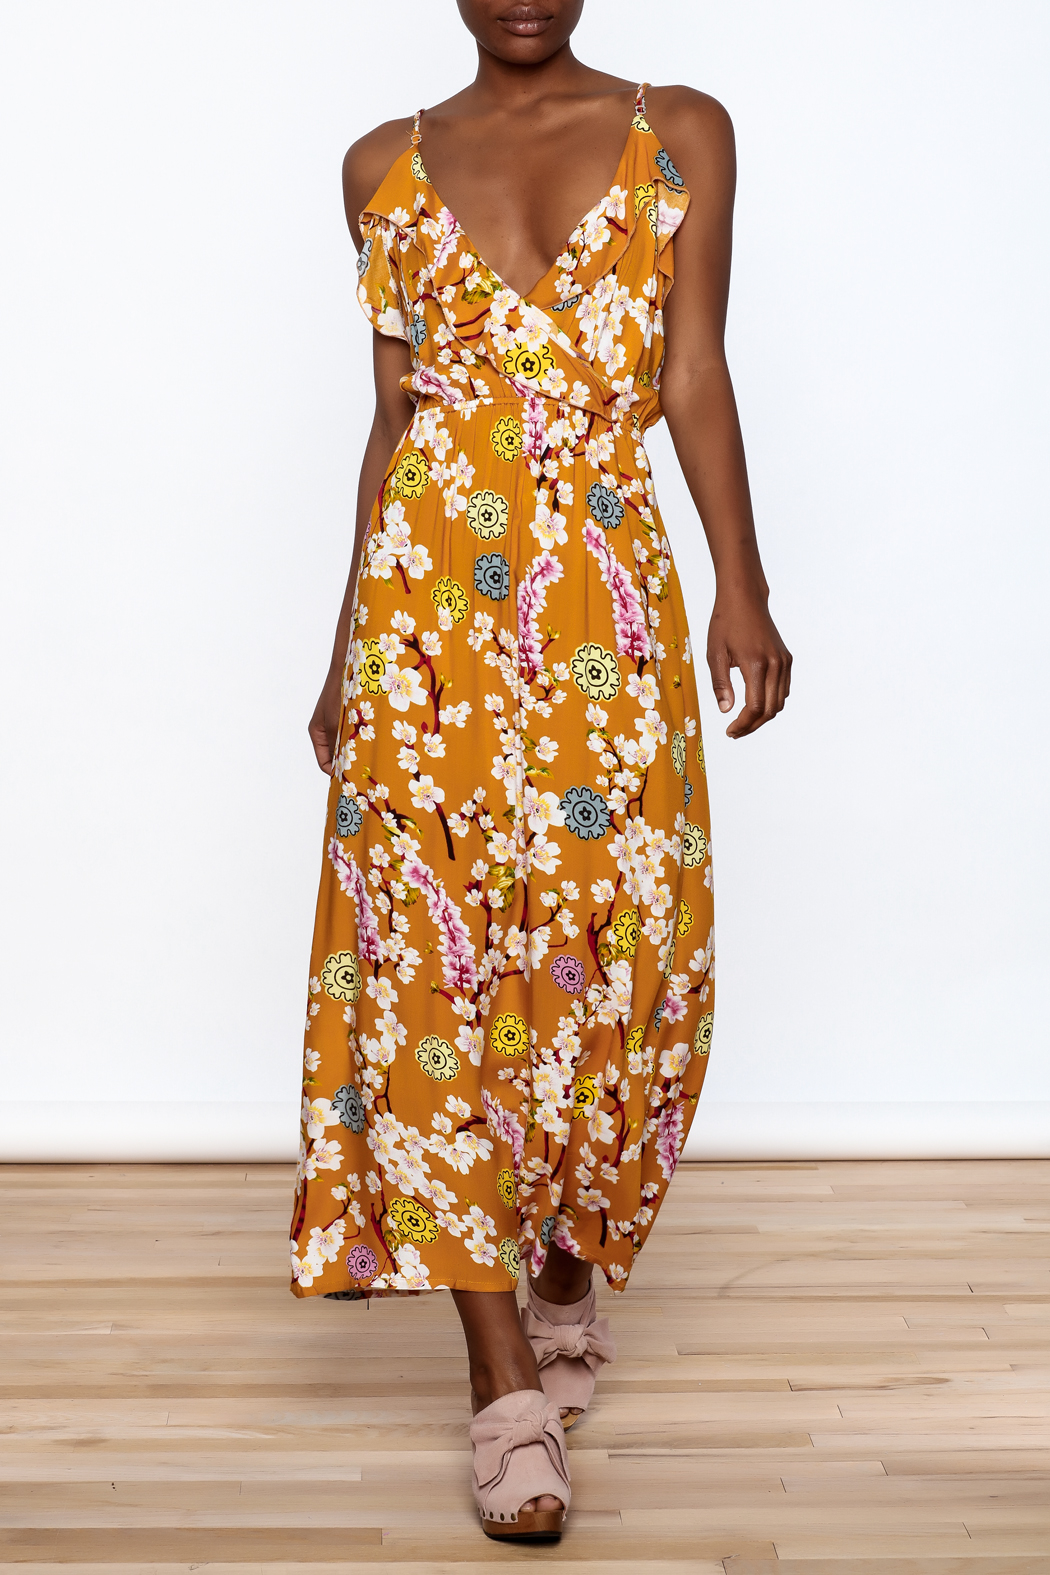 Jon & Anna Mustard Floral Maxi Dress - Main Image